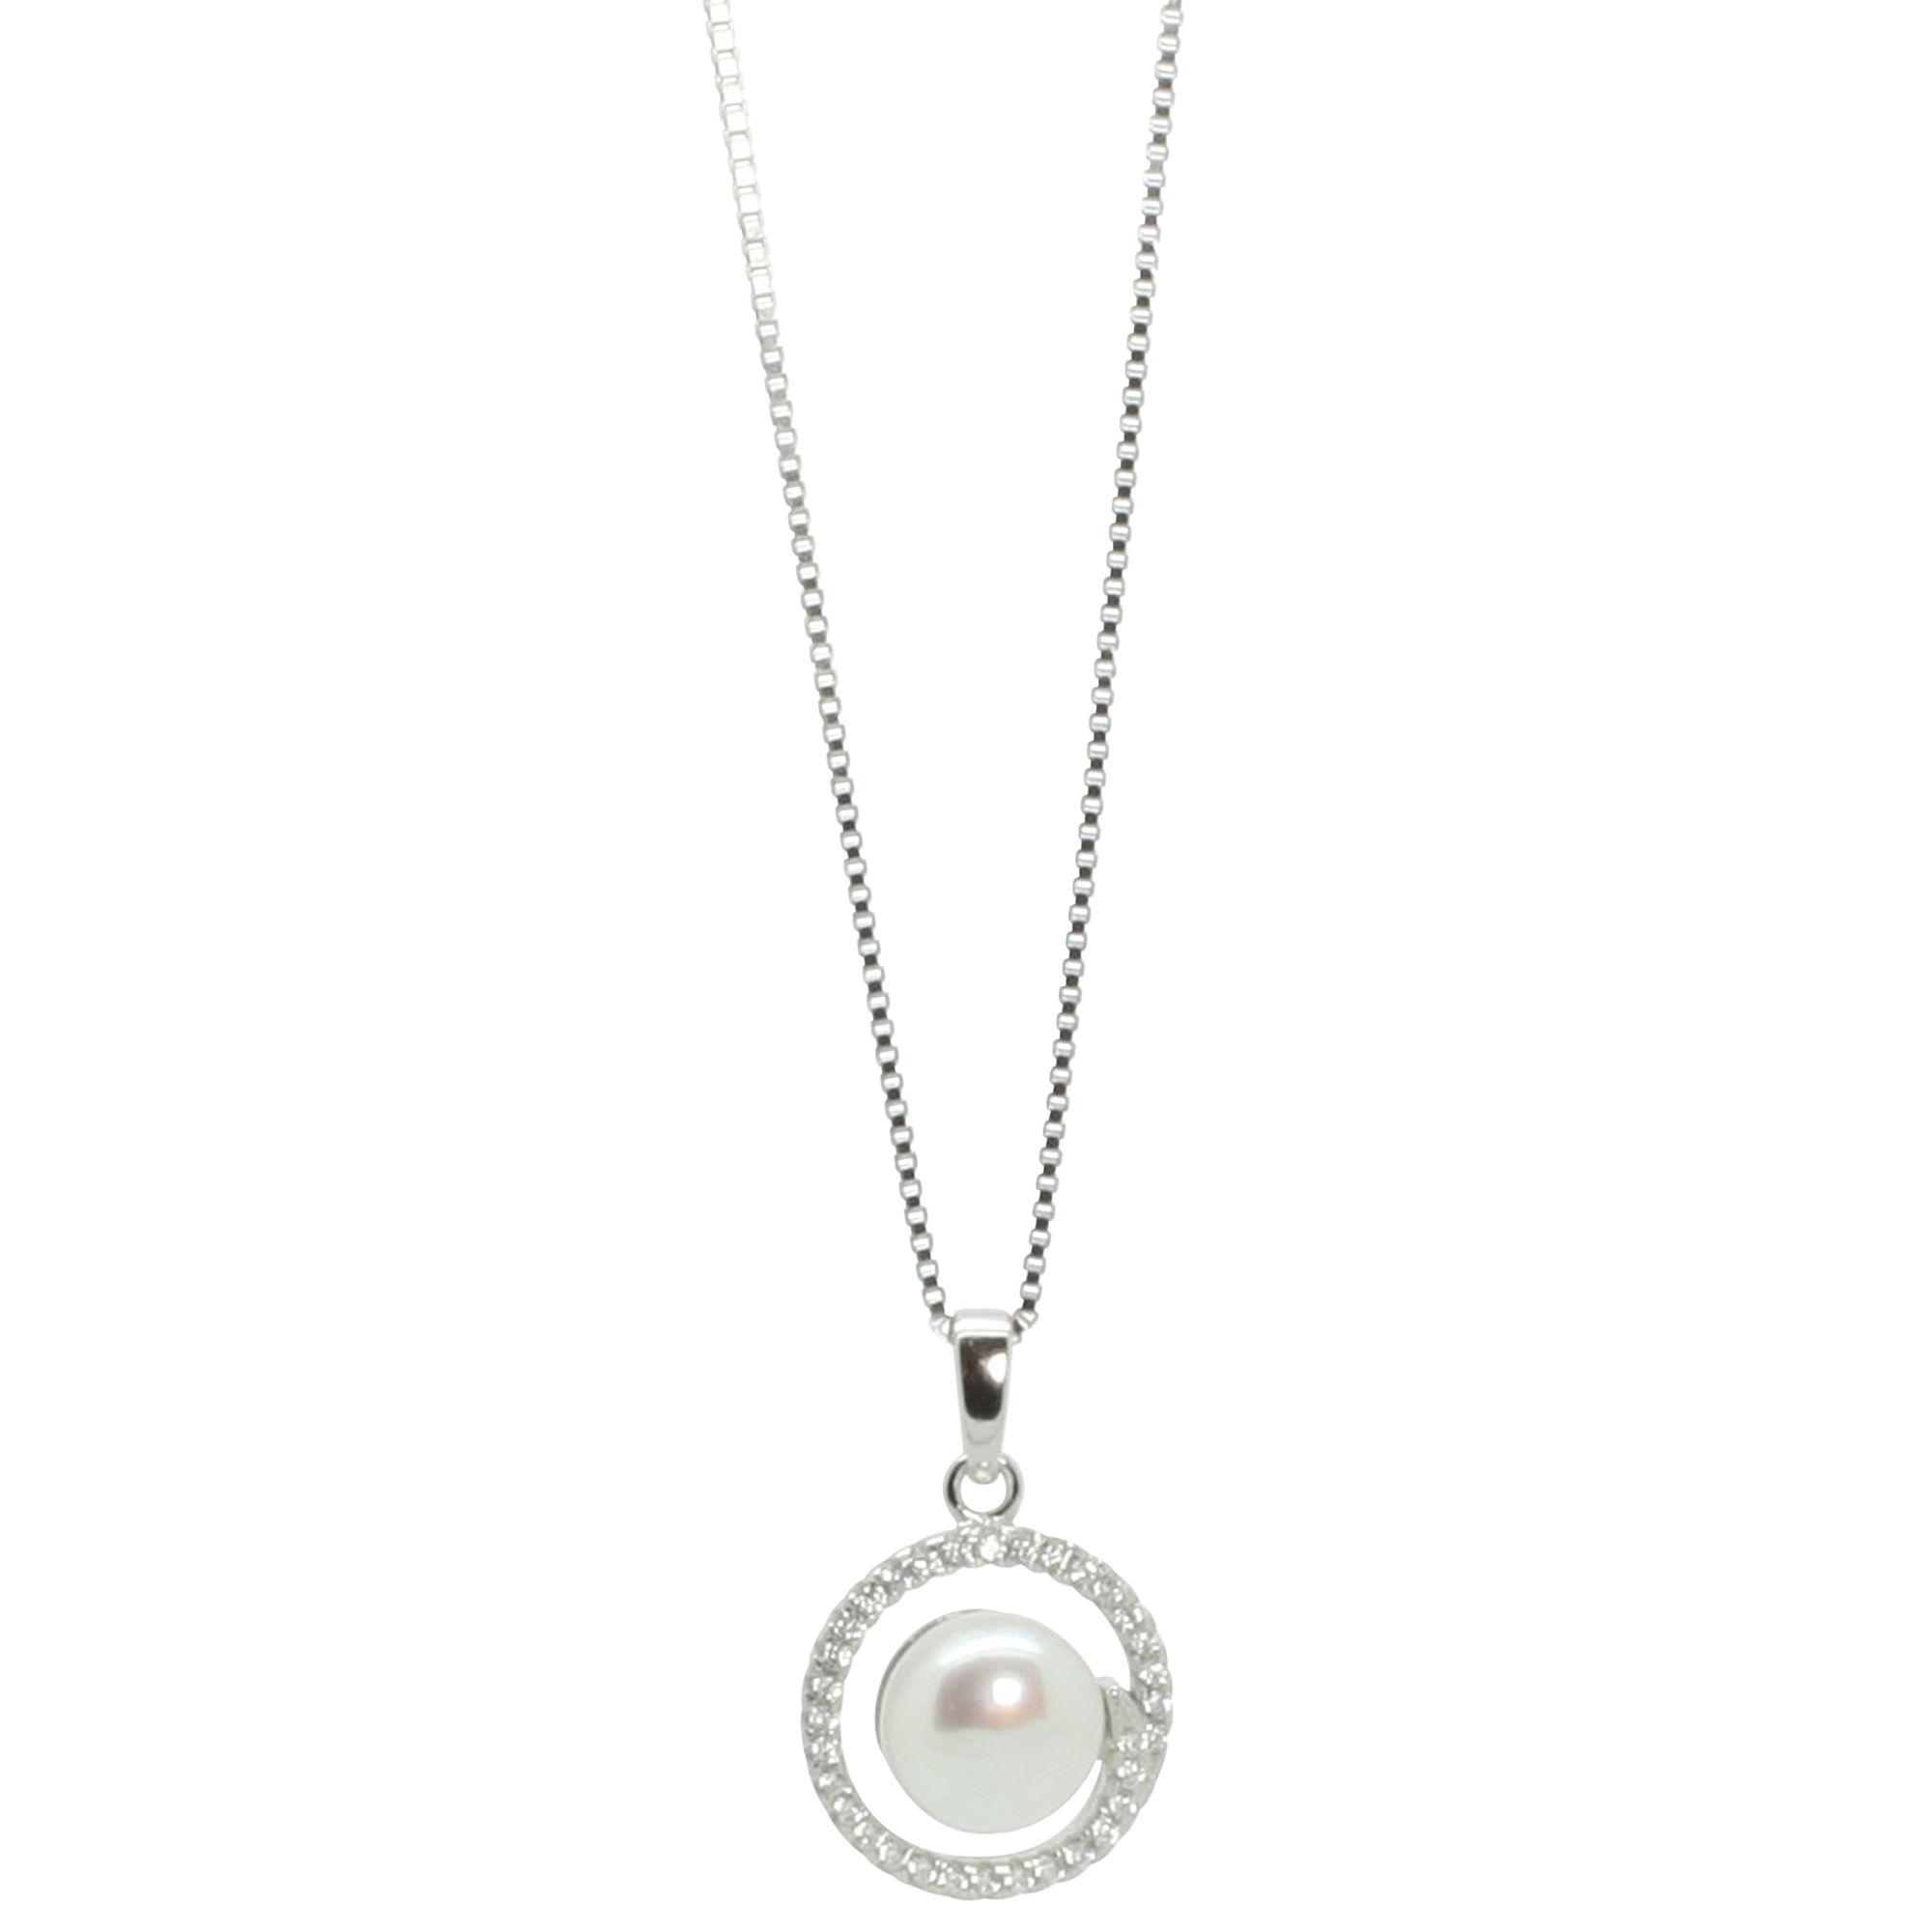 Lido Pearls Lido Pearls Round Cubic Zirconia Freshwater Pearl Pendant Necklace, Silver